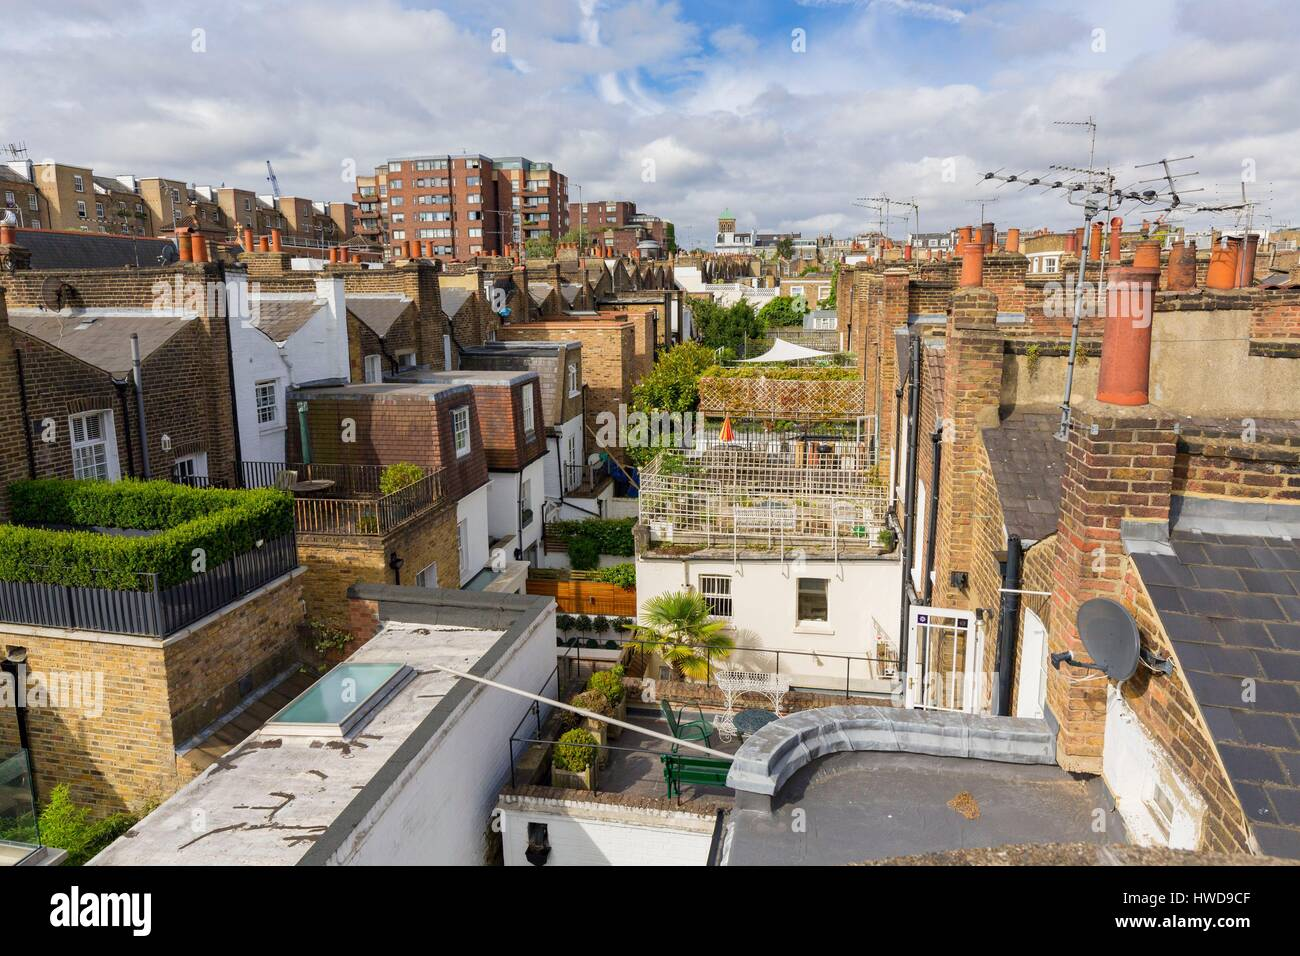 Stock Photo - United Kingdom London Kensington district close to Notting Hill roofs townhouses with outdoor patios upstairs & United Kingdom London Kensington district close to Notting Hill ... memphite.com